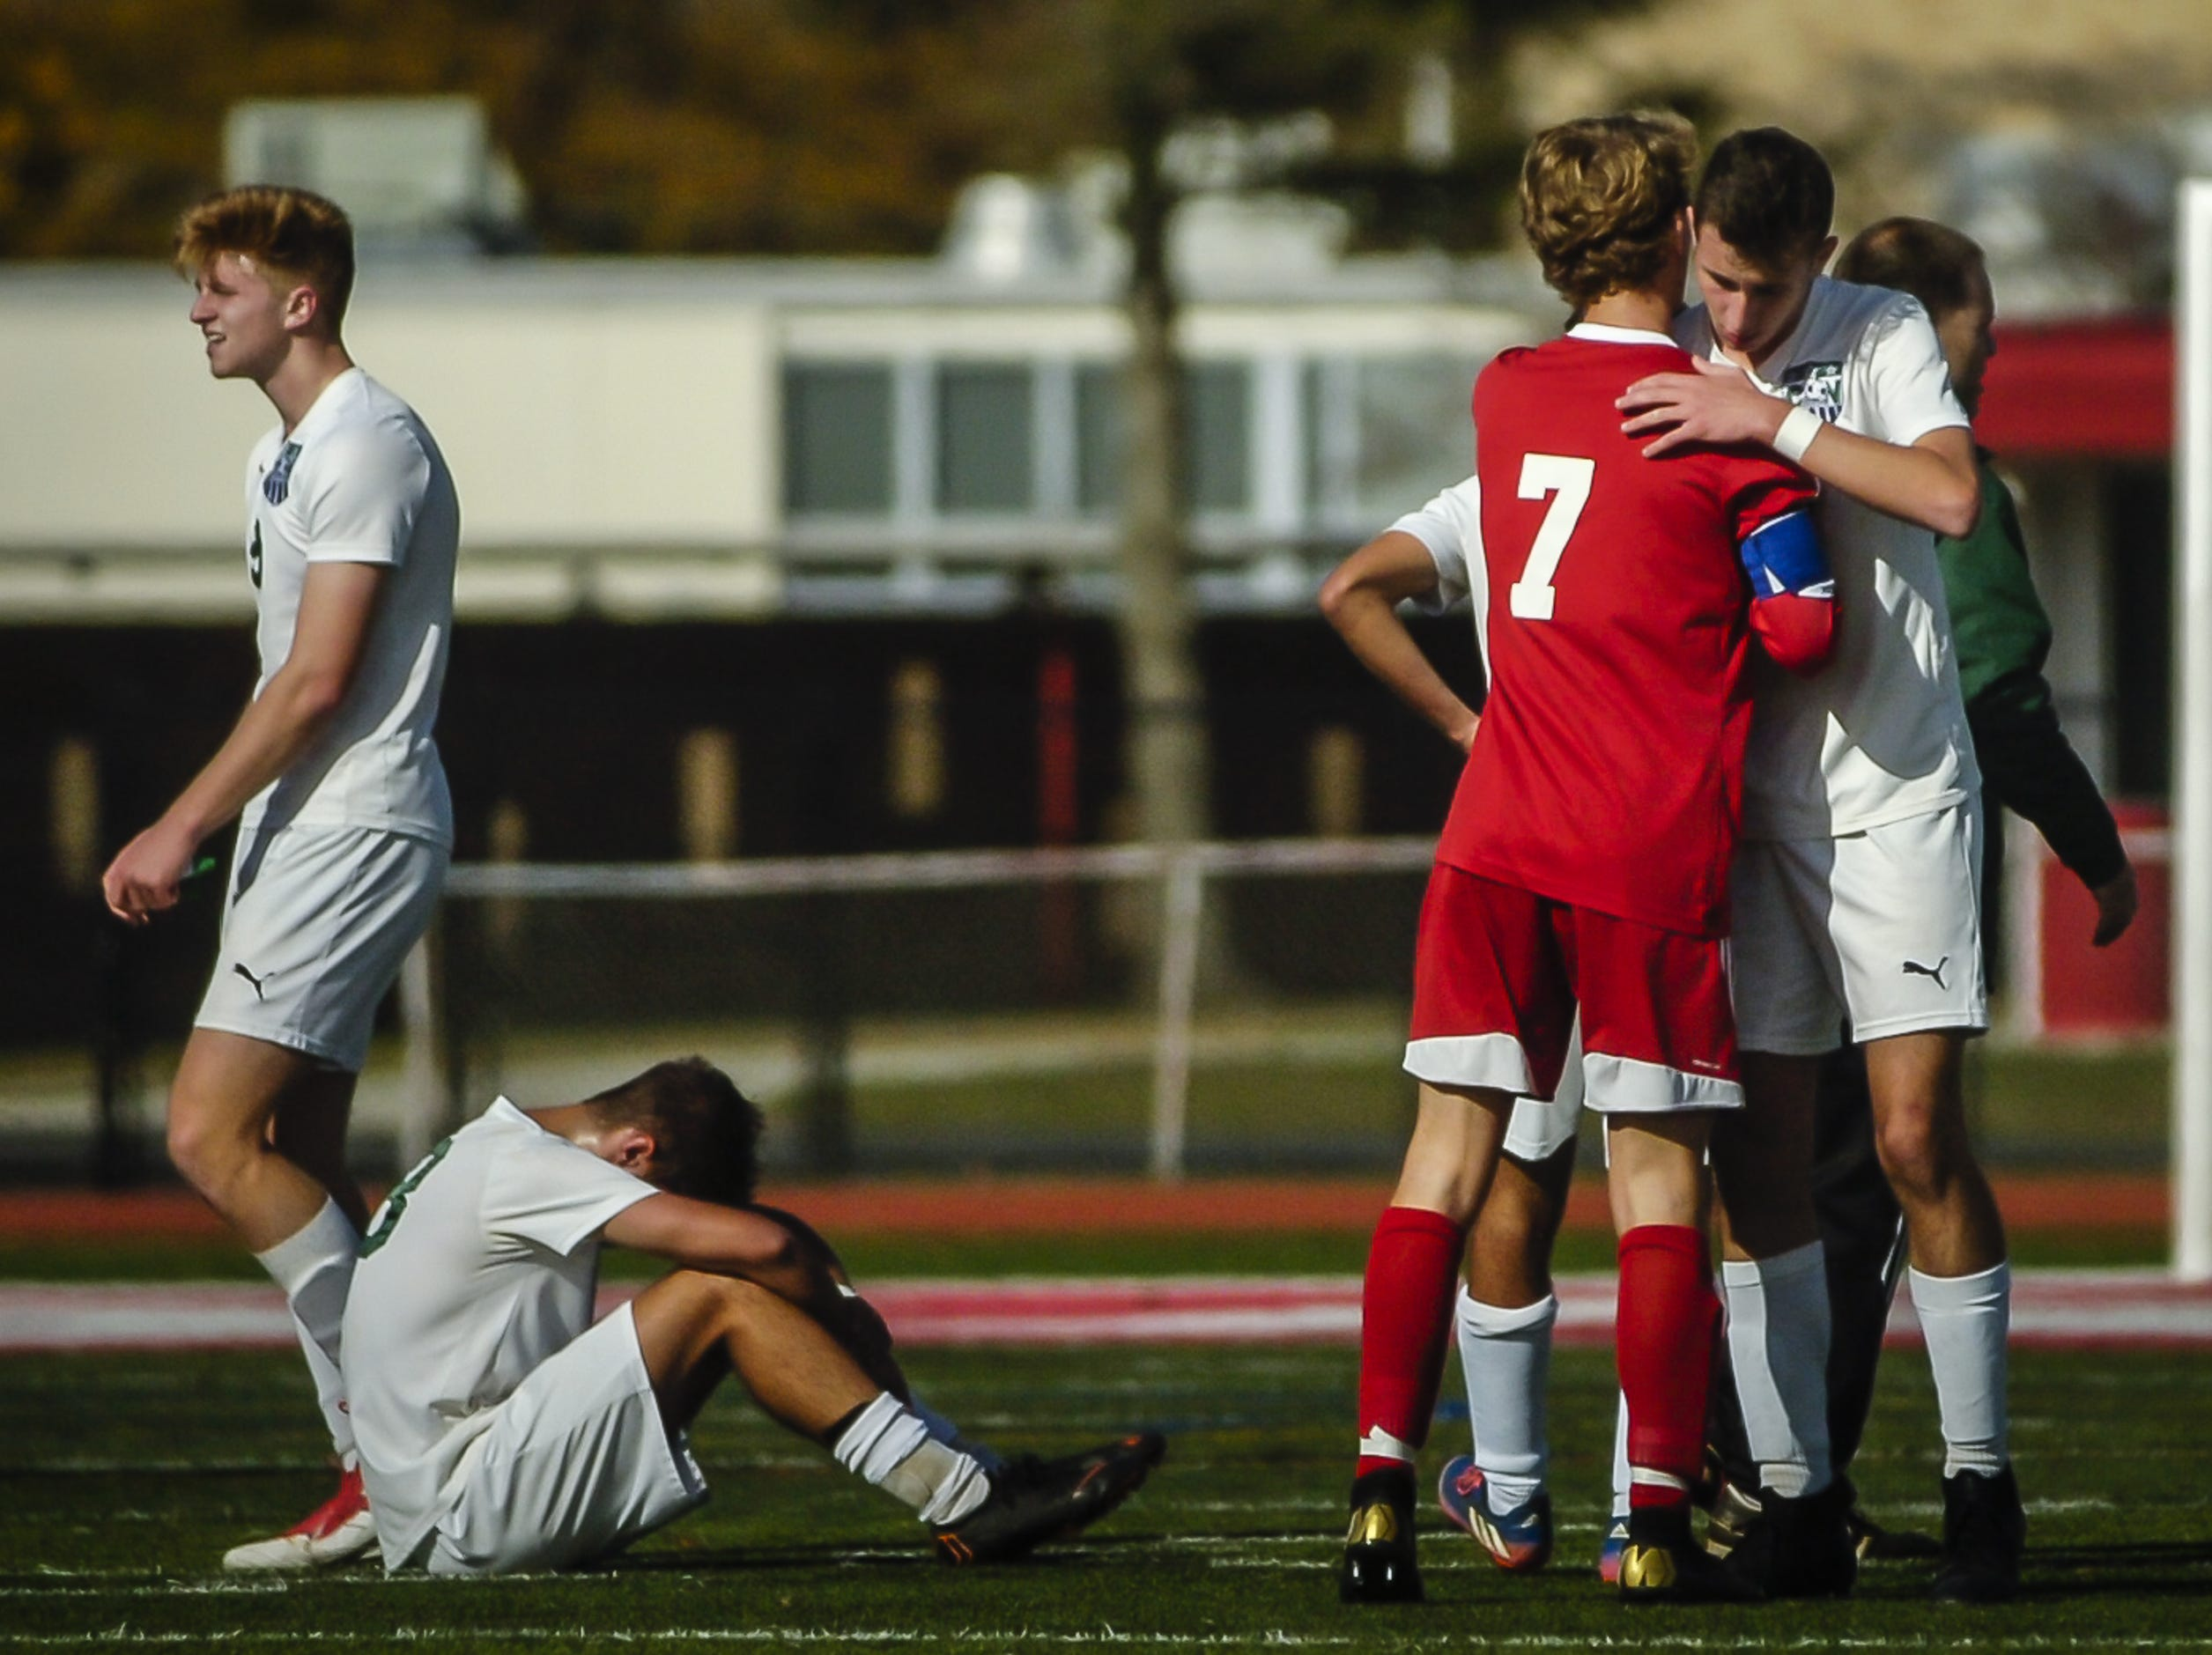 Zach Sintic, (#7) of Ocean Twp., shakes hands with a Colts Neck player following a 2-1 victory over Colts Neck in the NJSIAA Central Jersey, Group III final on Nov. 8, 2018 in Ocean.